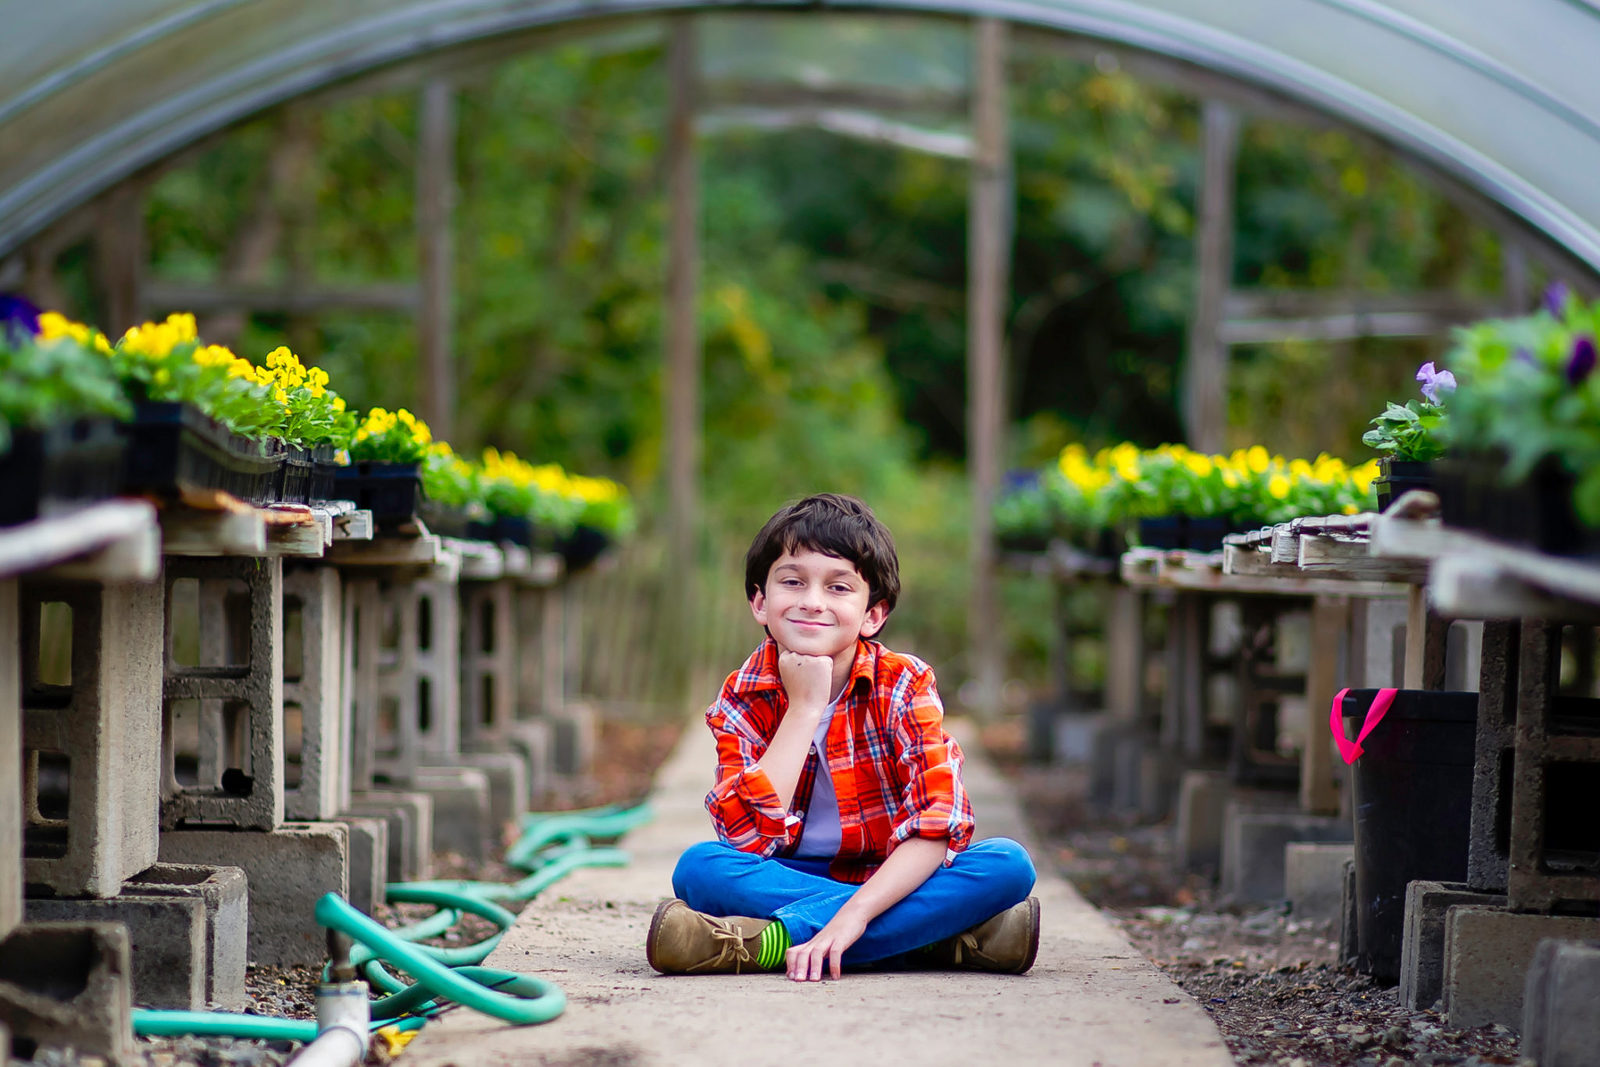 Boy wearing orange plaid shirt and blue pants sitting cross legged in a nursery with pansy flowers